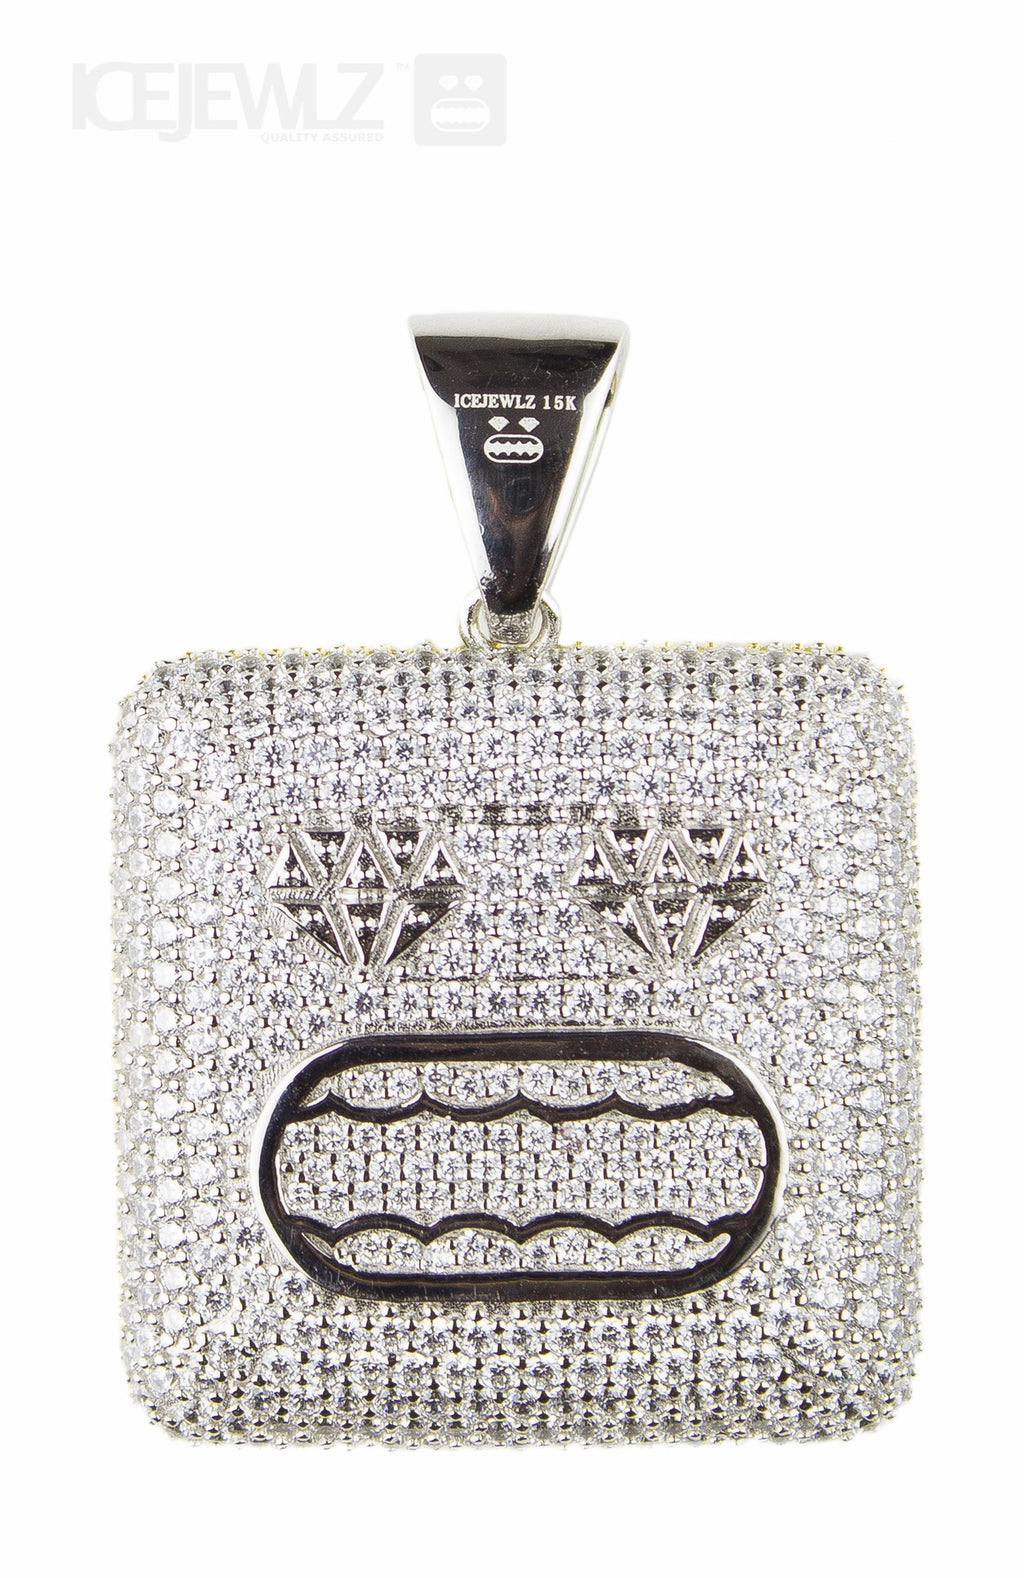 Mr Icejewlz micro pendant (Silver) with chain - IceJewlz - 2